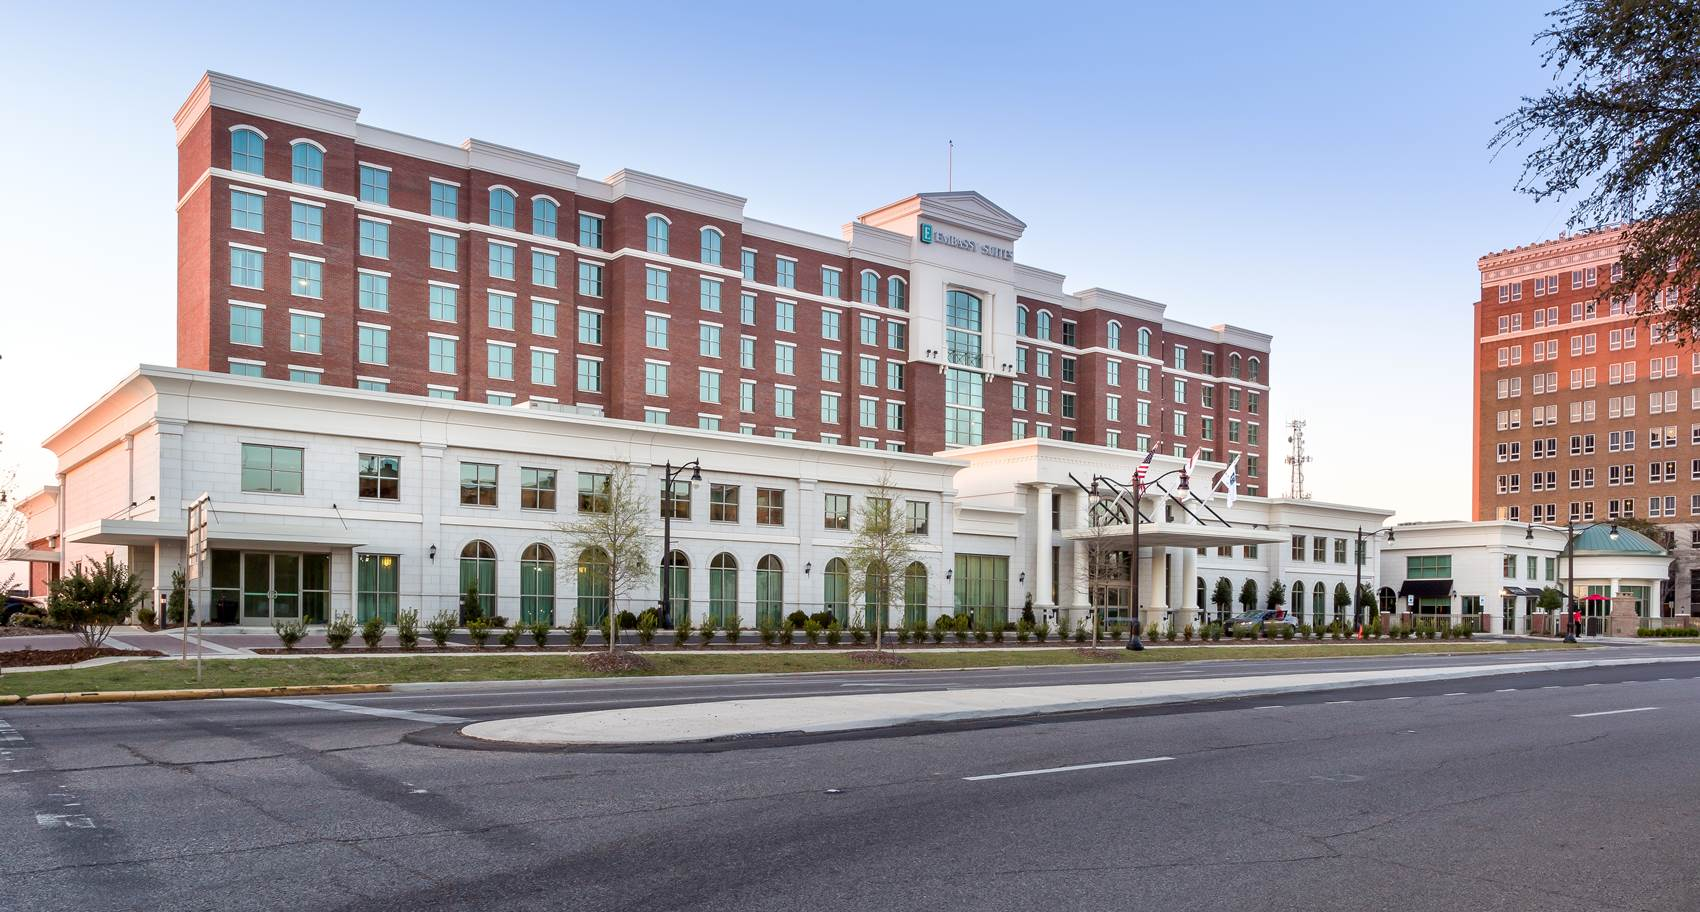 Exterior view of Embassy Suites Hotel in Tuscaloosa